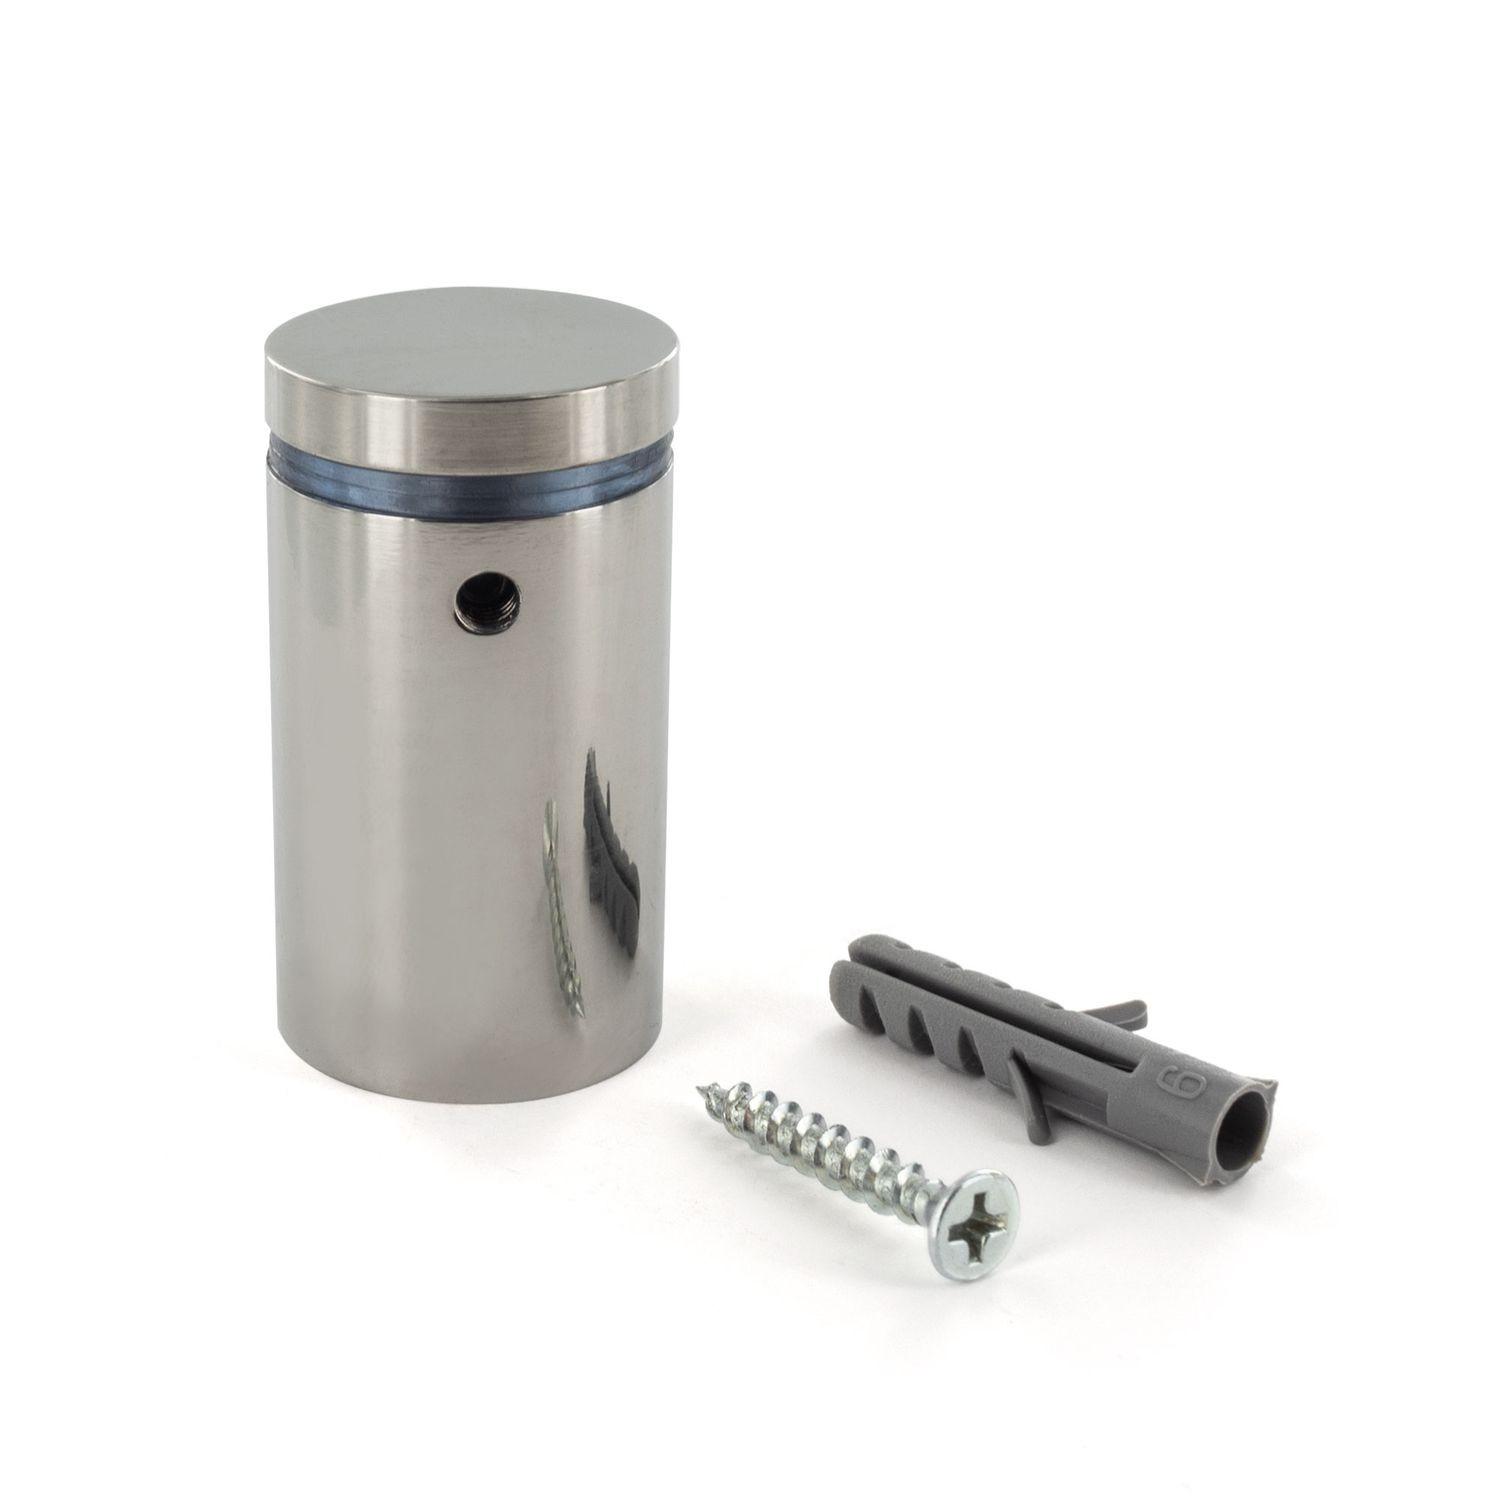 "1"" Diameter x 1-1/2"" Barrel Length Polished Stainless Finish Eco Lock Series Tamper Proof Standoff"